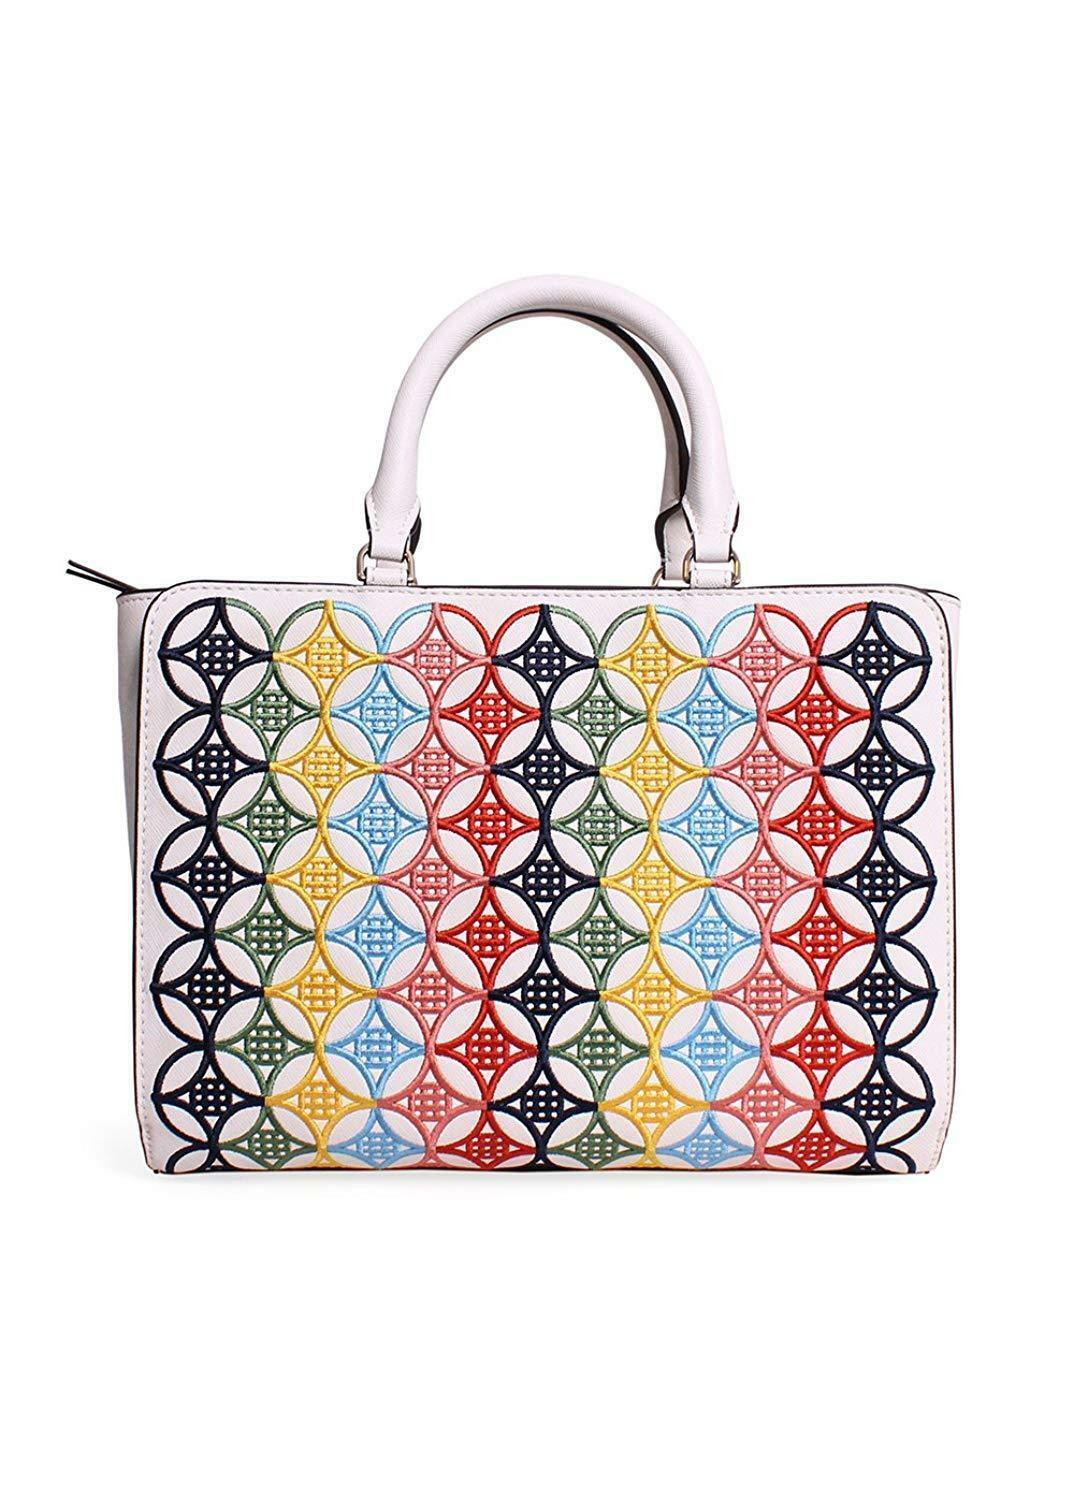 Tory Burch Robinson Embroidered Small Zip Tote in New Ivory Multi image 3